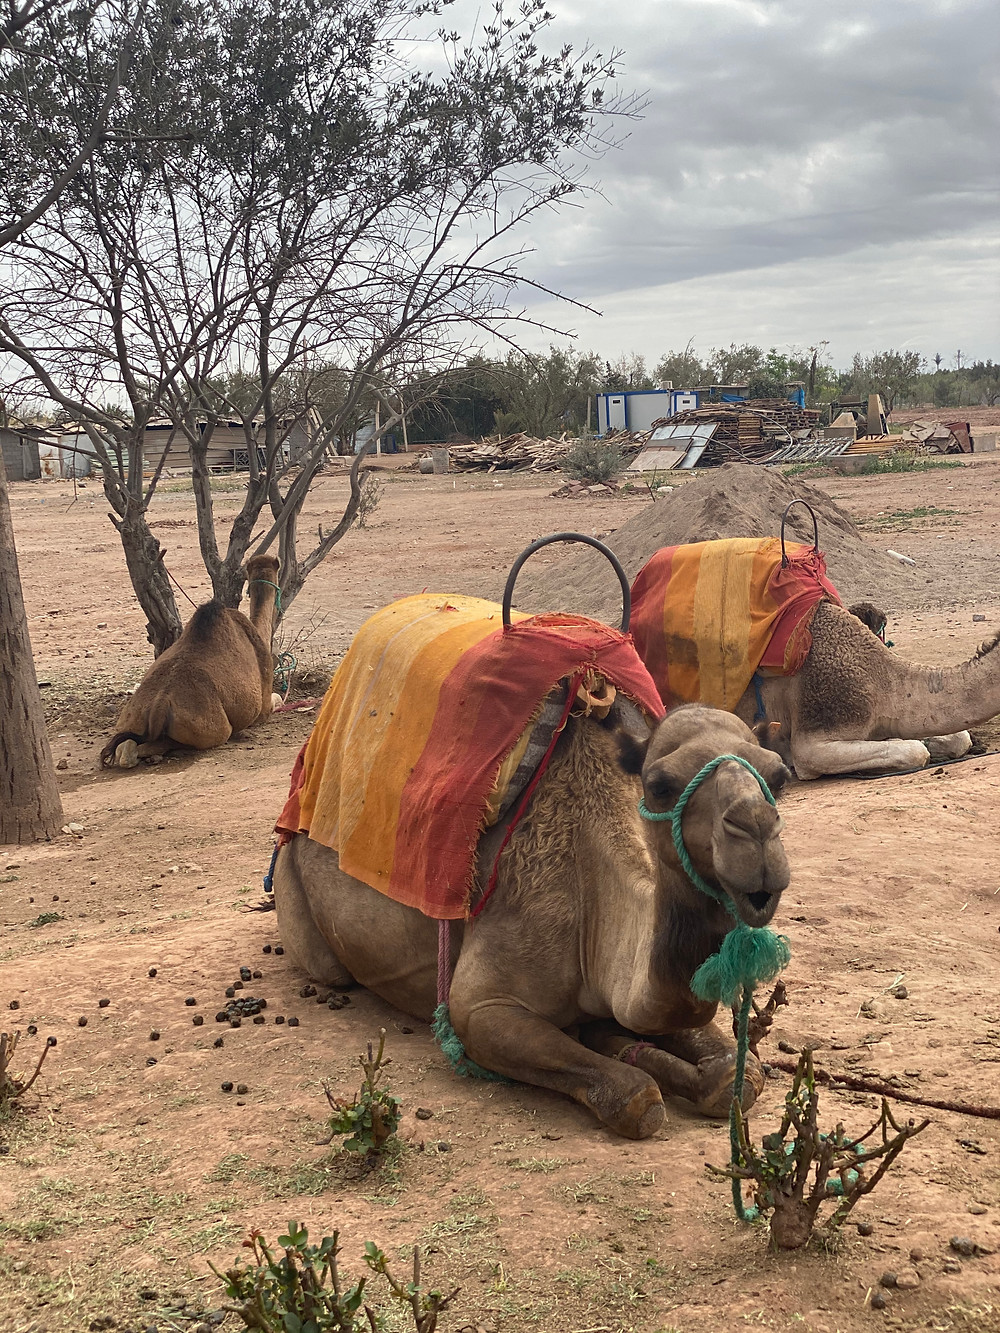 camels in Marrakech Morocco during COVID-19 shutdown